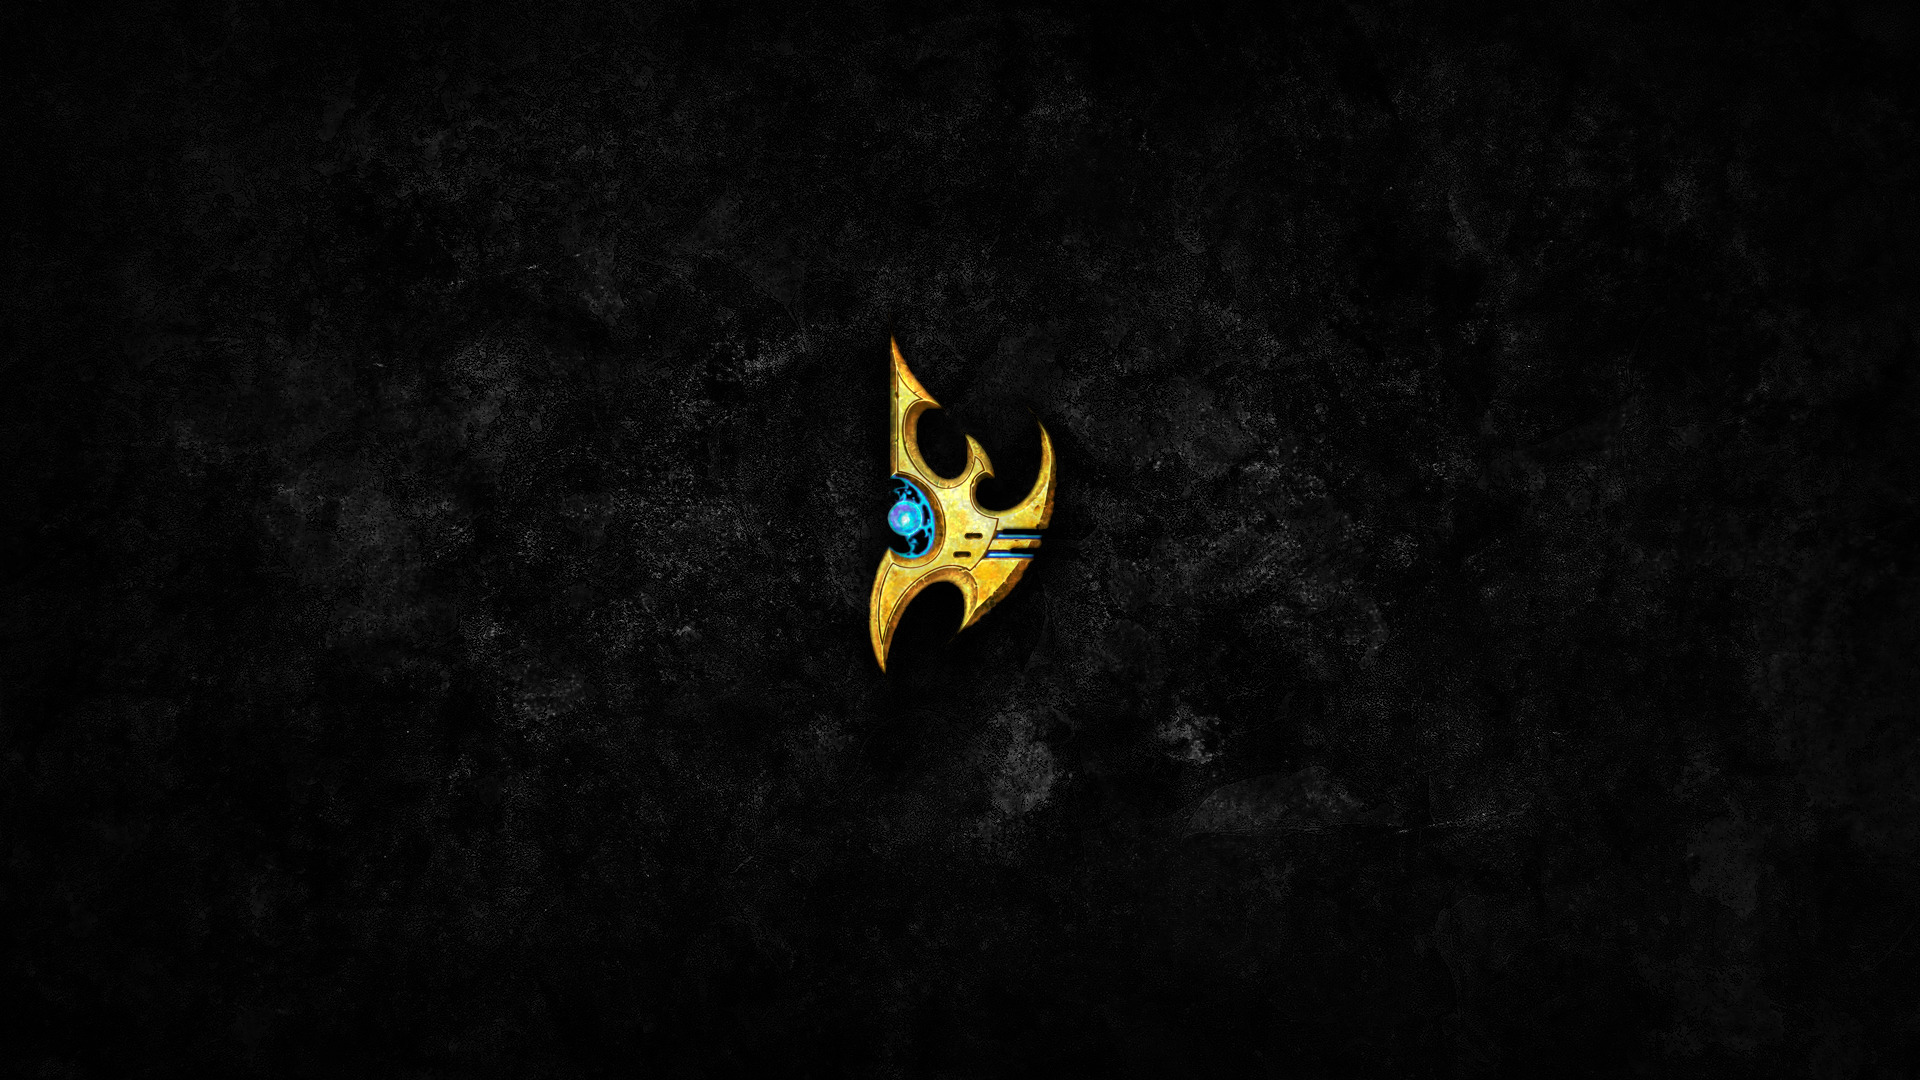 video Games starcraft grunge HD Wallpaper